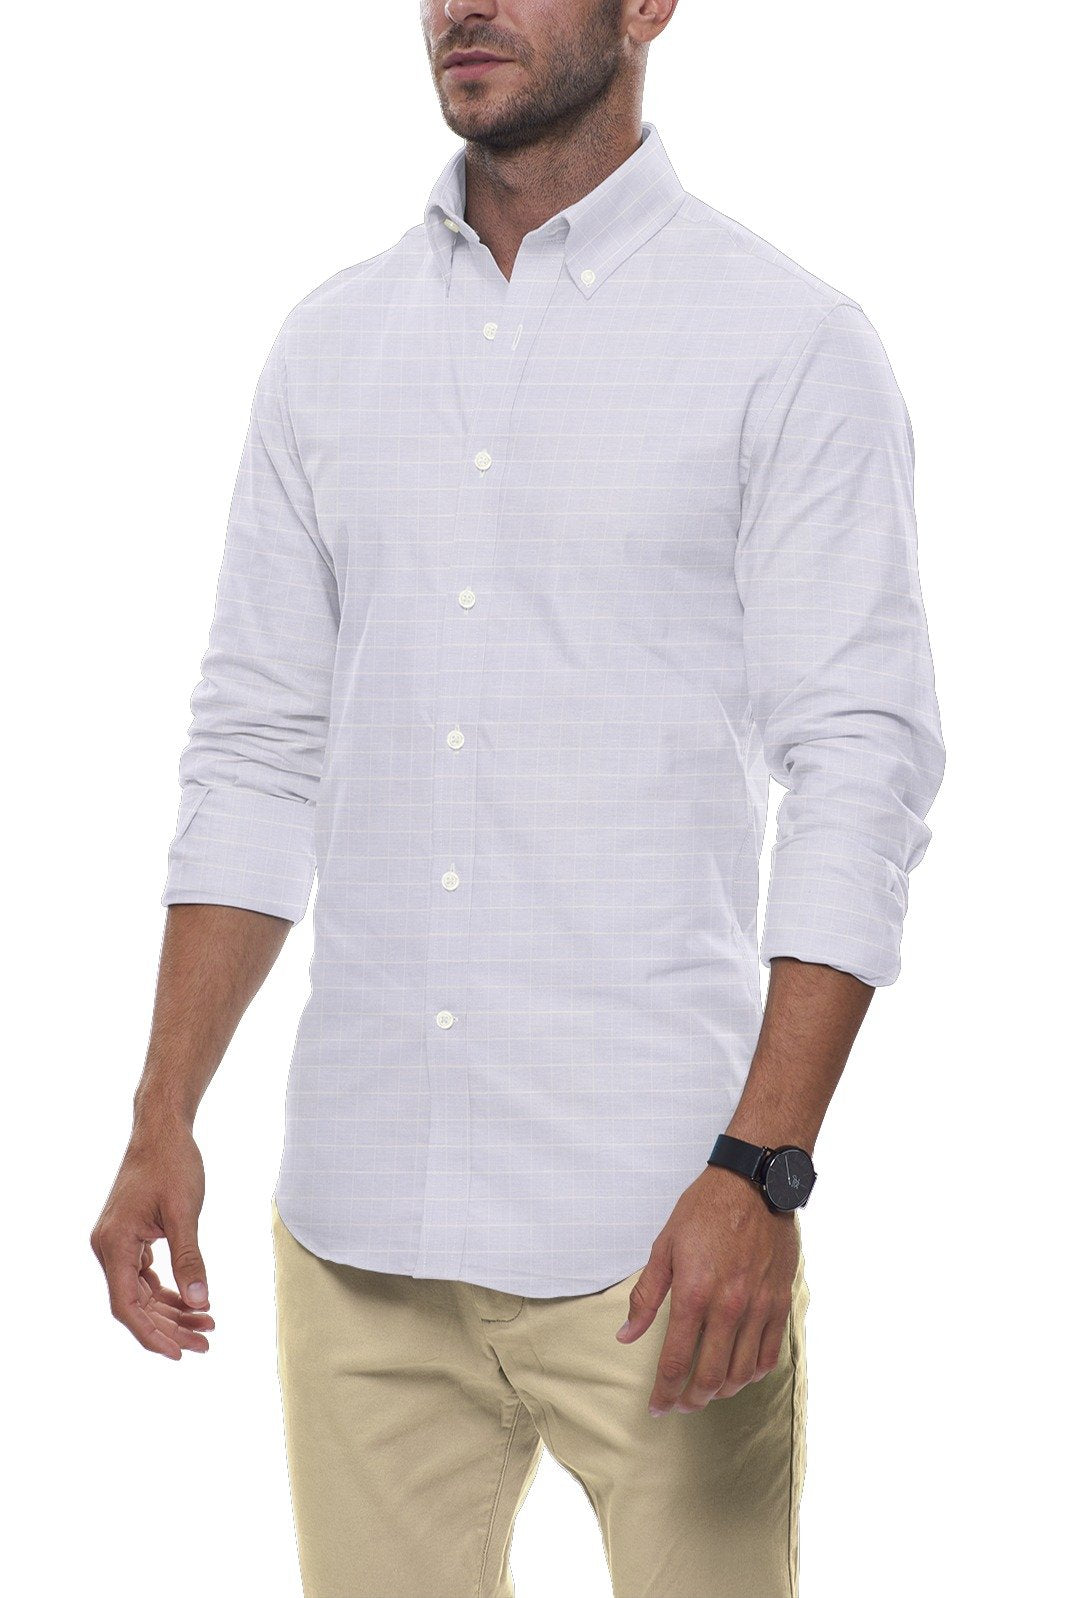 Powder Blue Grid Stripe Linen: Button-Down Collar, Long Sleeve